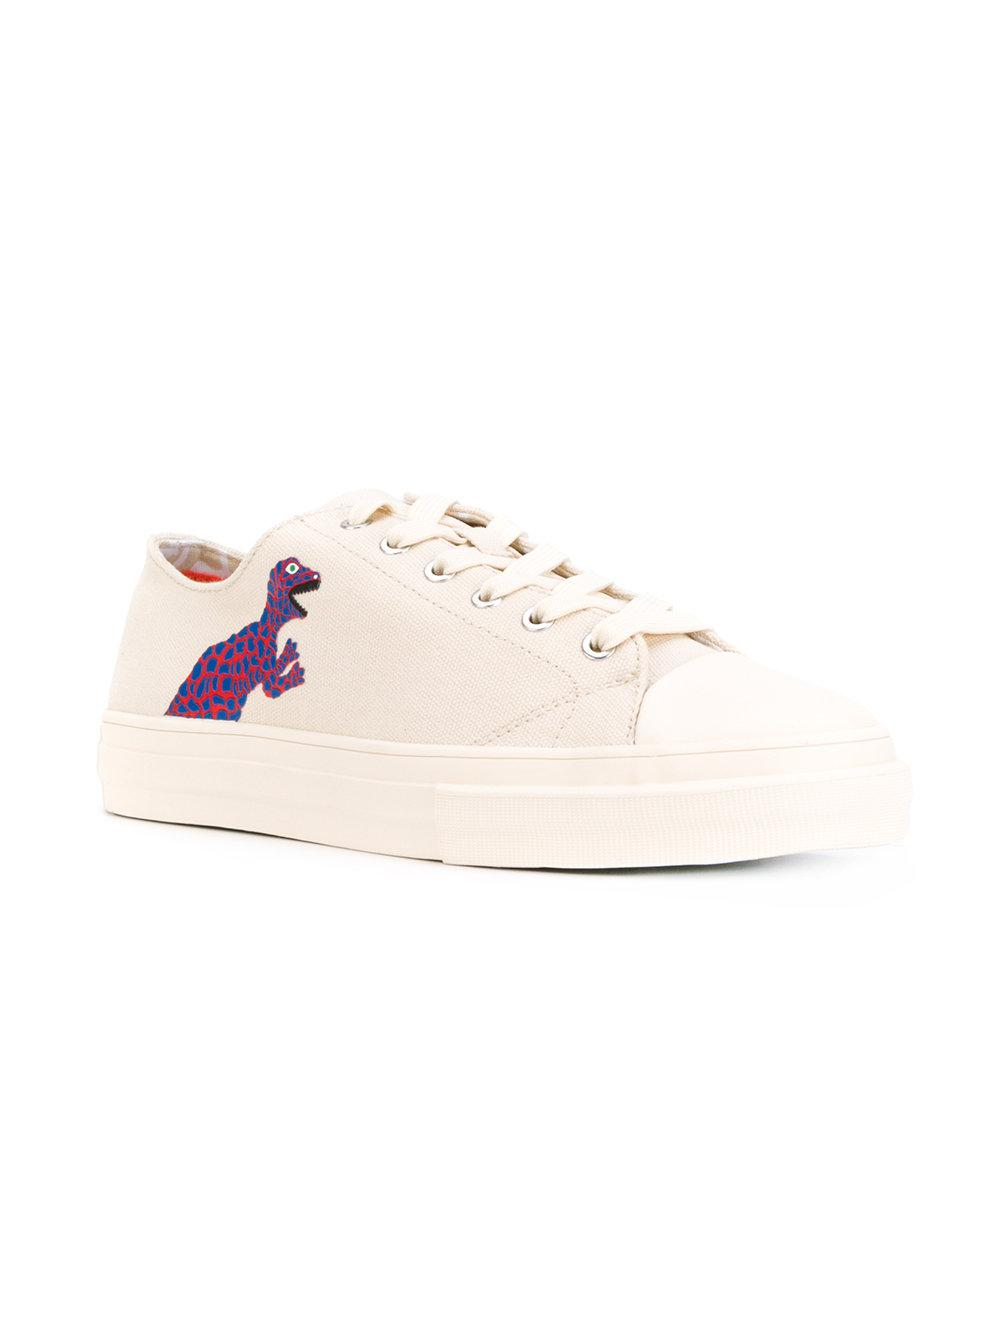 PS by Paul Smith Canvas Dinosaur Sneakers